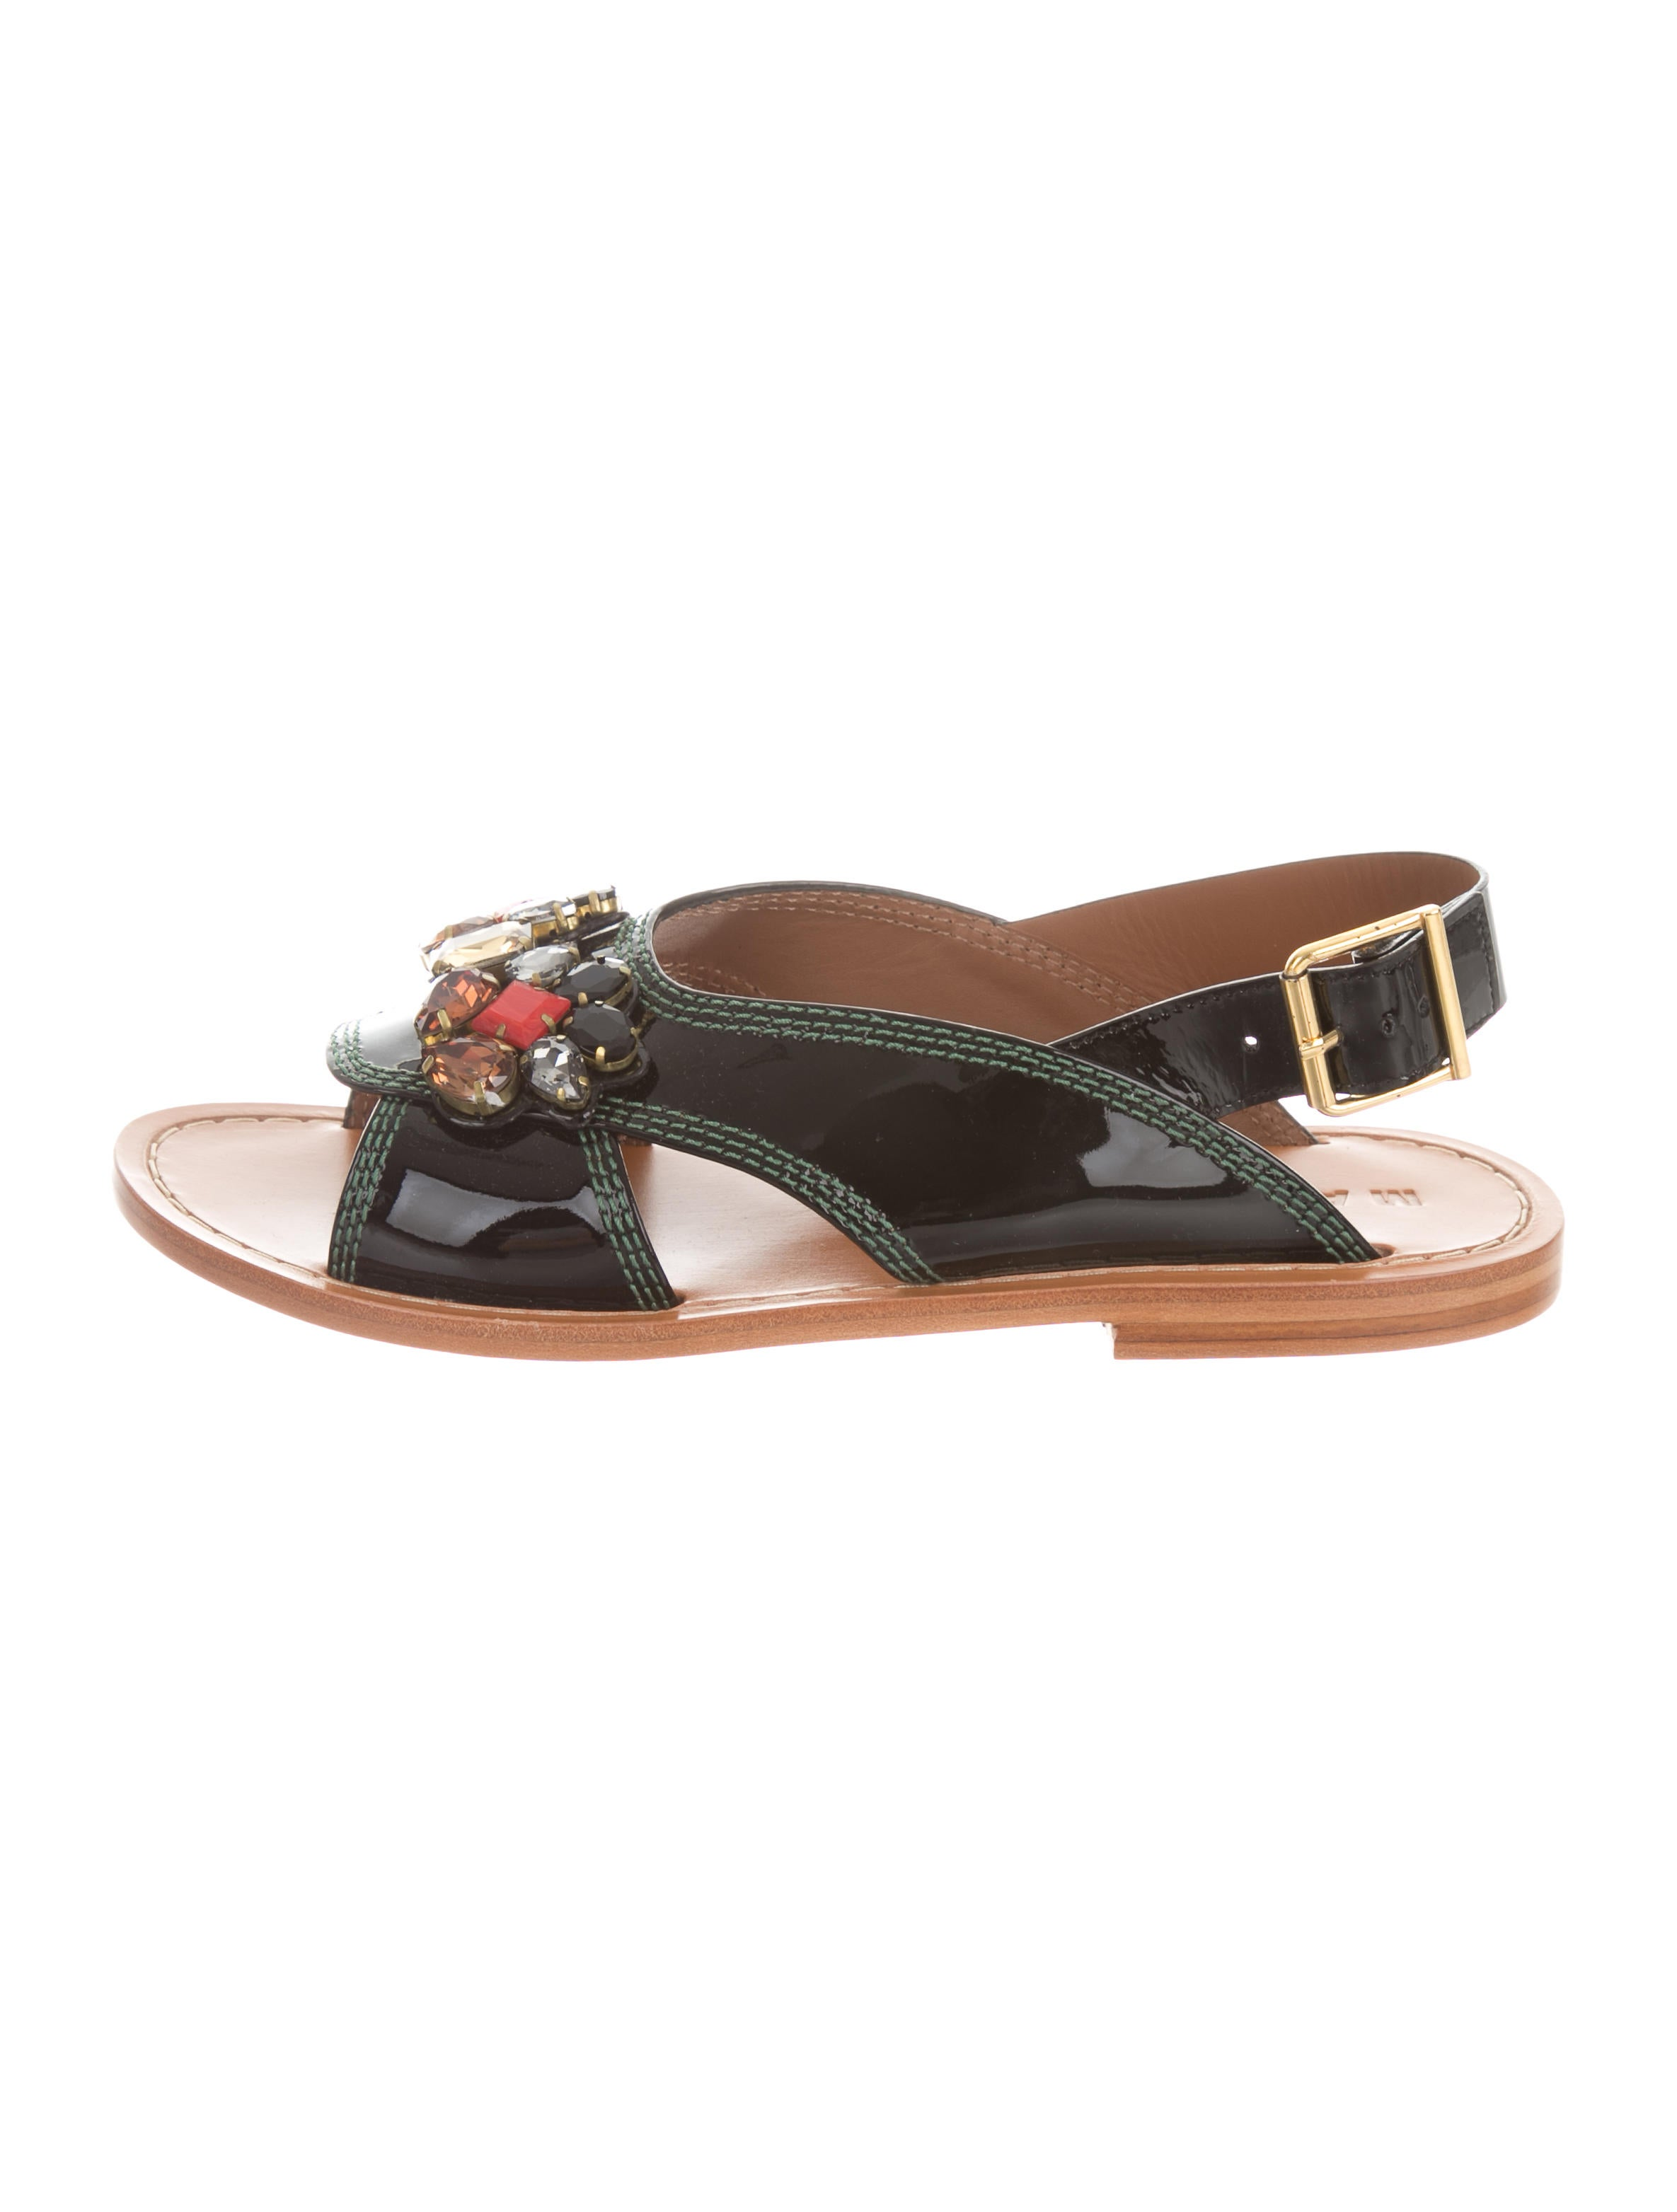 under $60 sale online Marni Embellished Slingback Sandals w/ Tags Cheapest online cheap sneakernews browse sale online JB6bOj